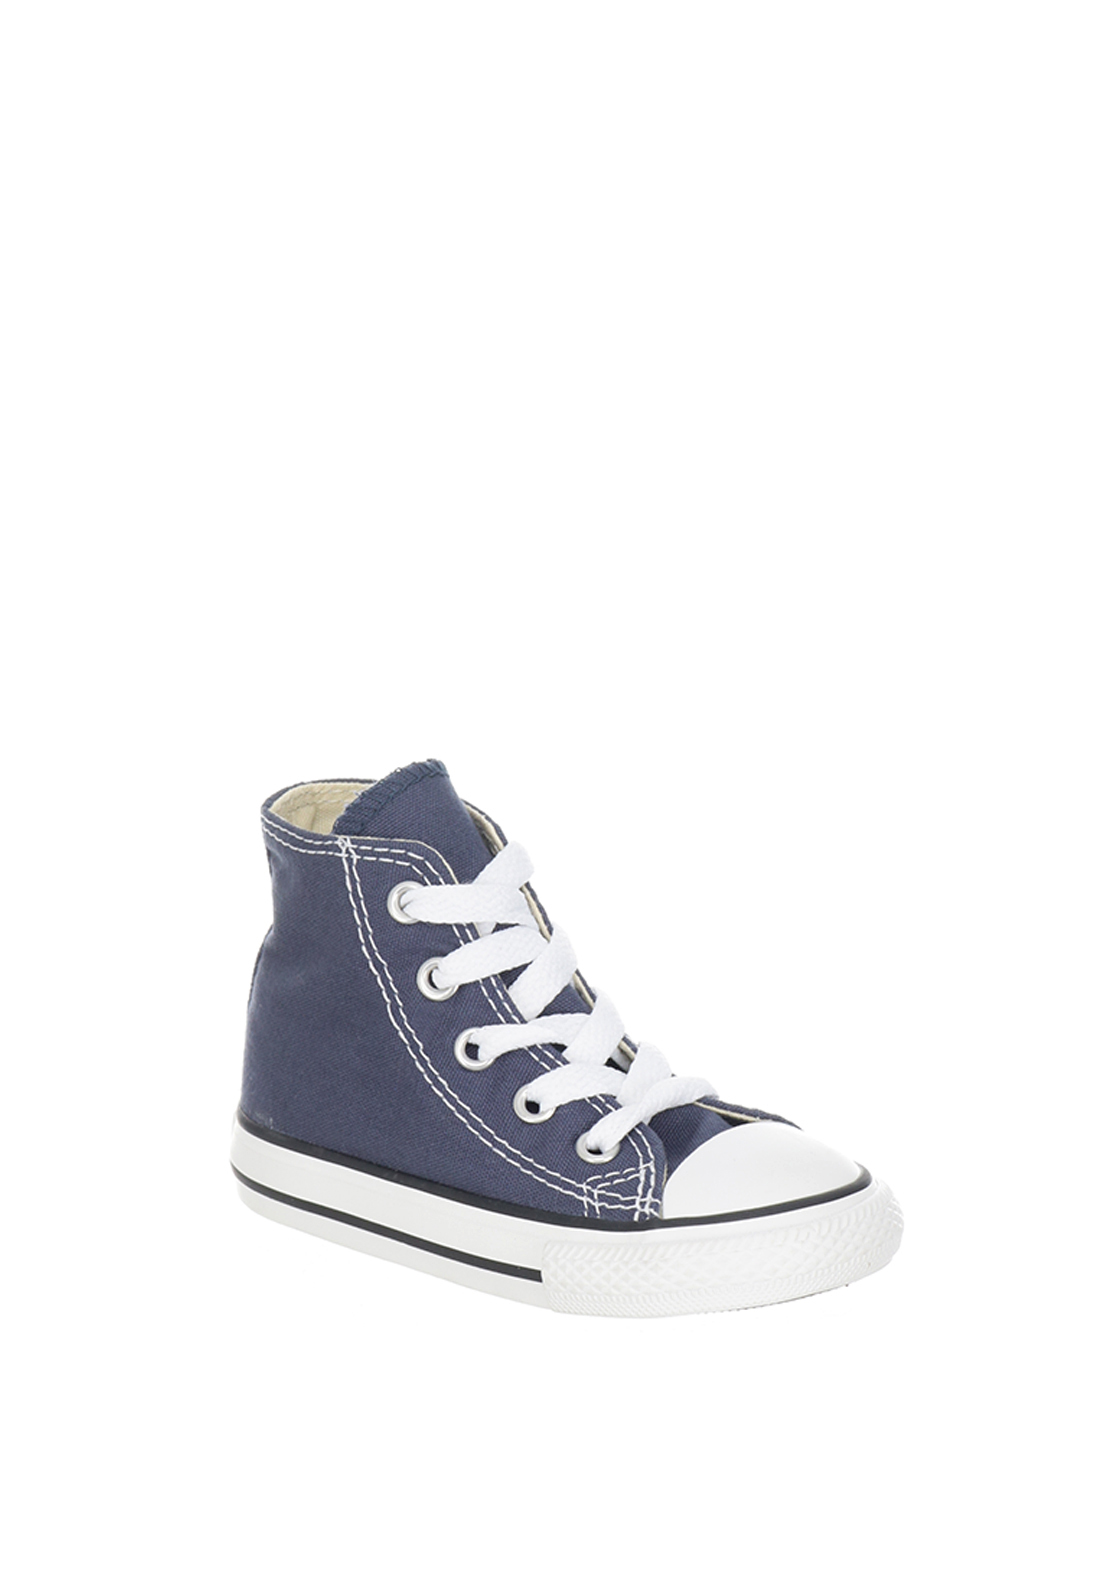 Converse Toddler All-Star Hi Top Trainers, Navy